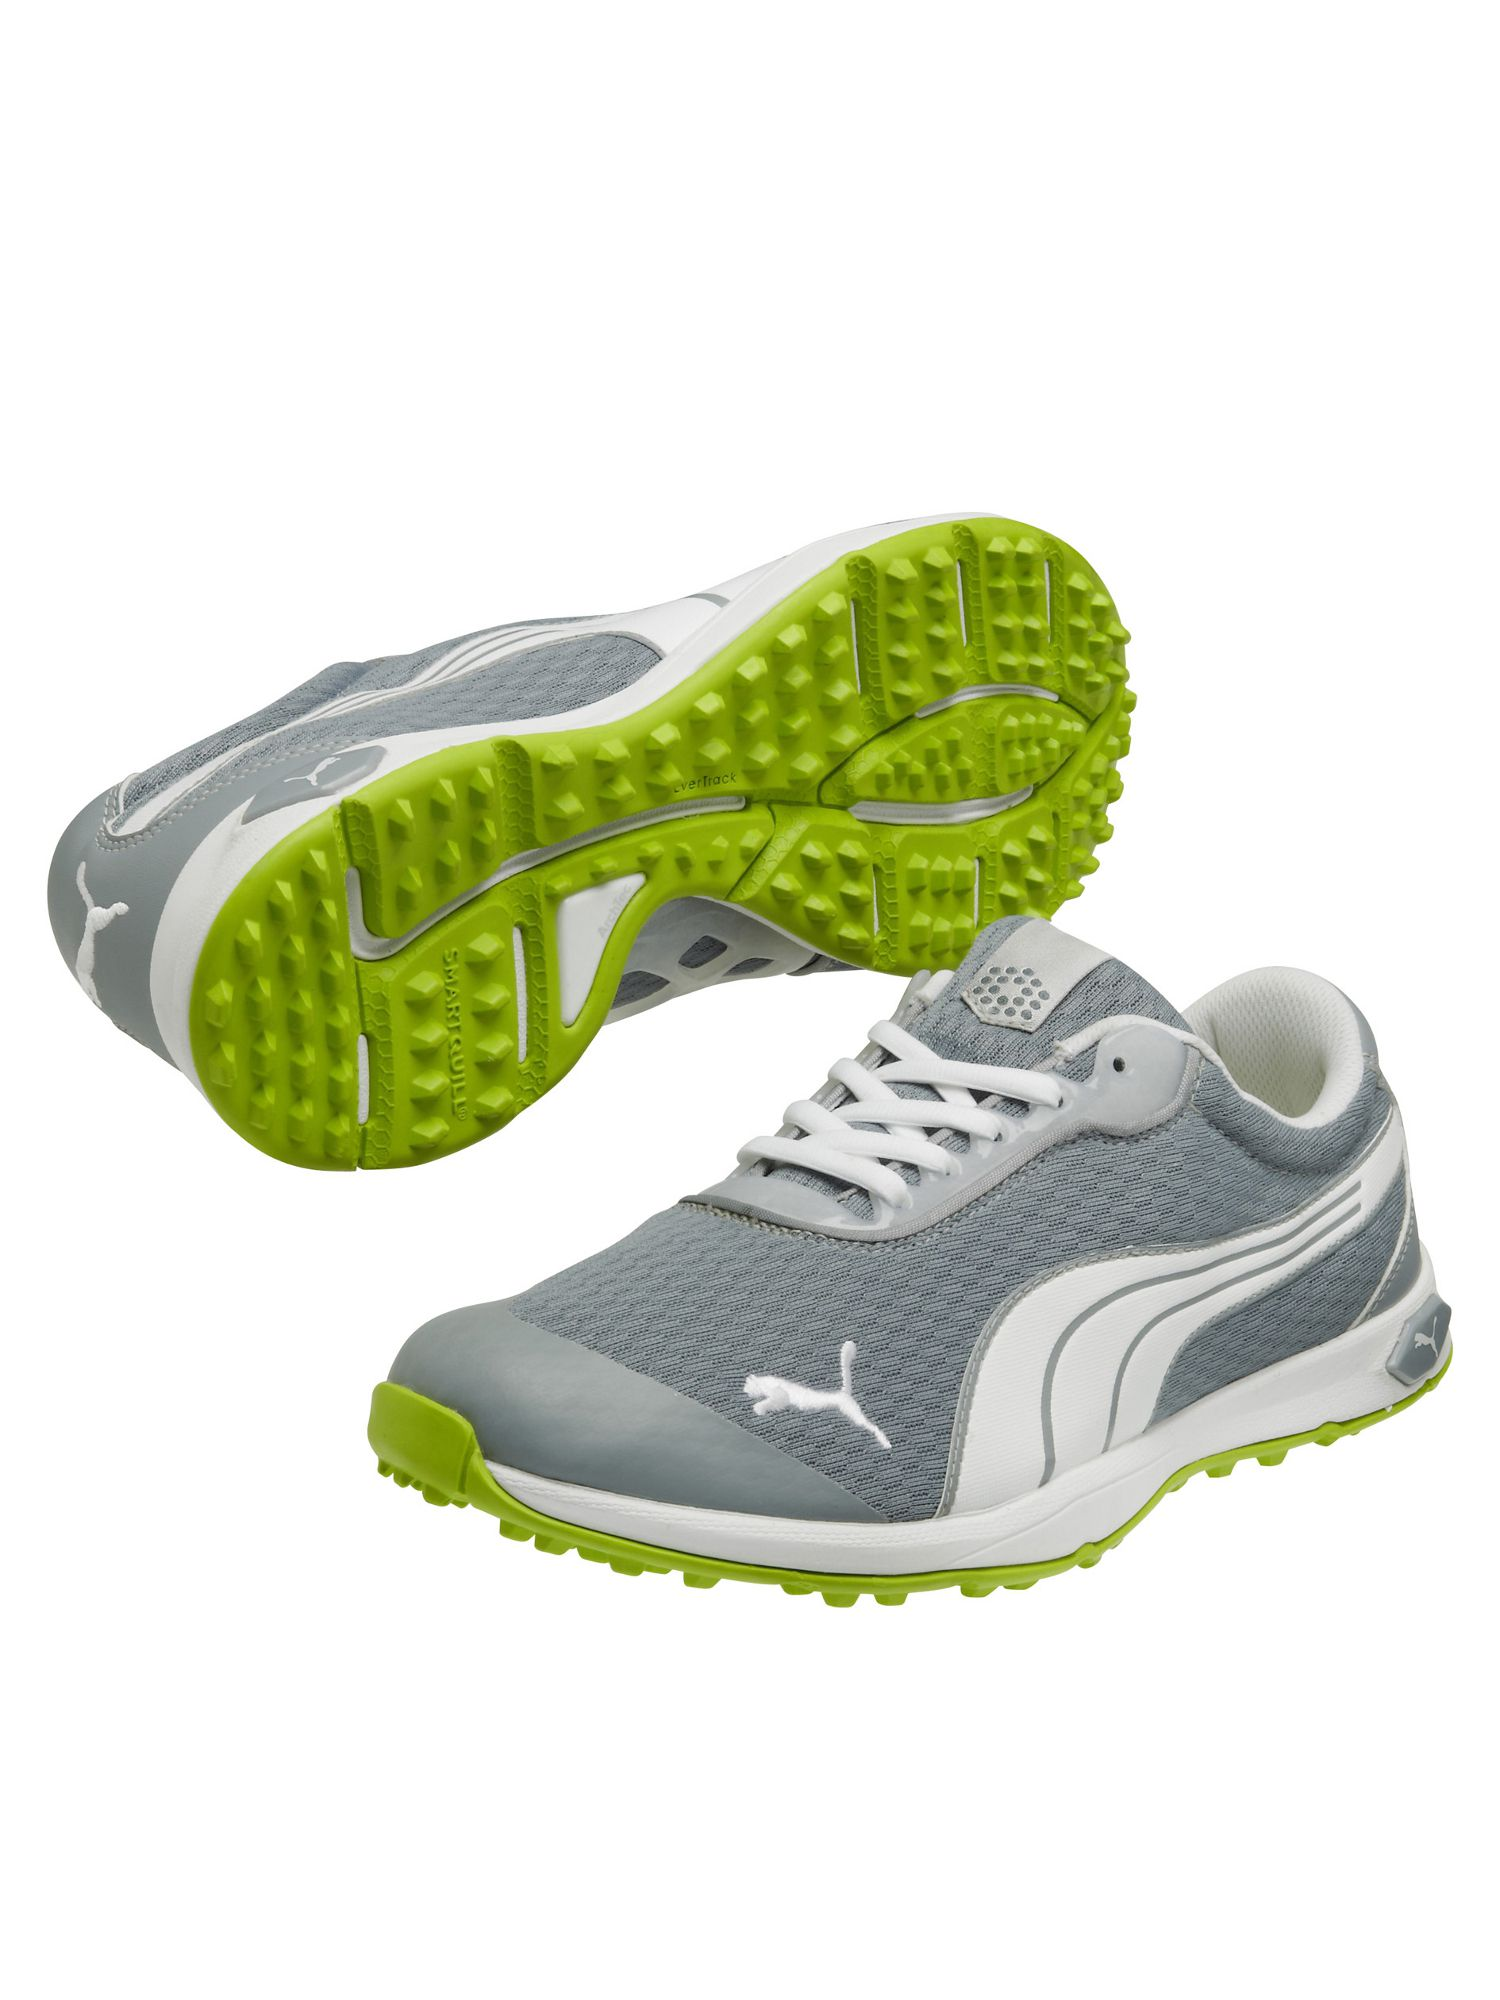 Bio fusion SL mesh golf shoes